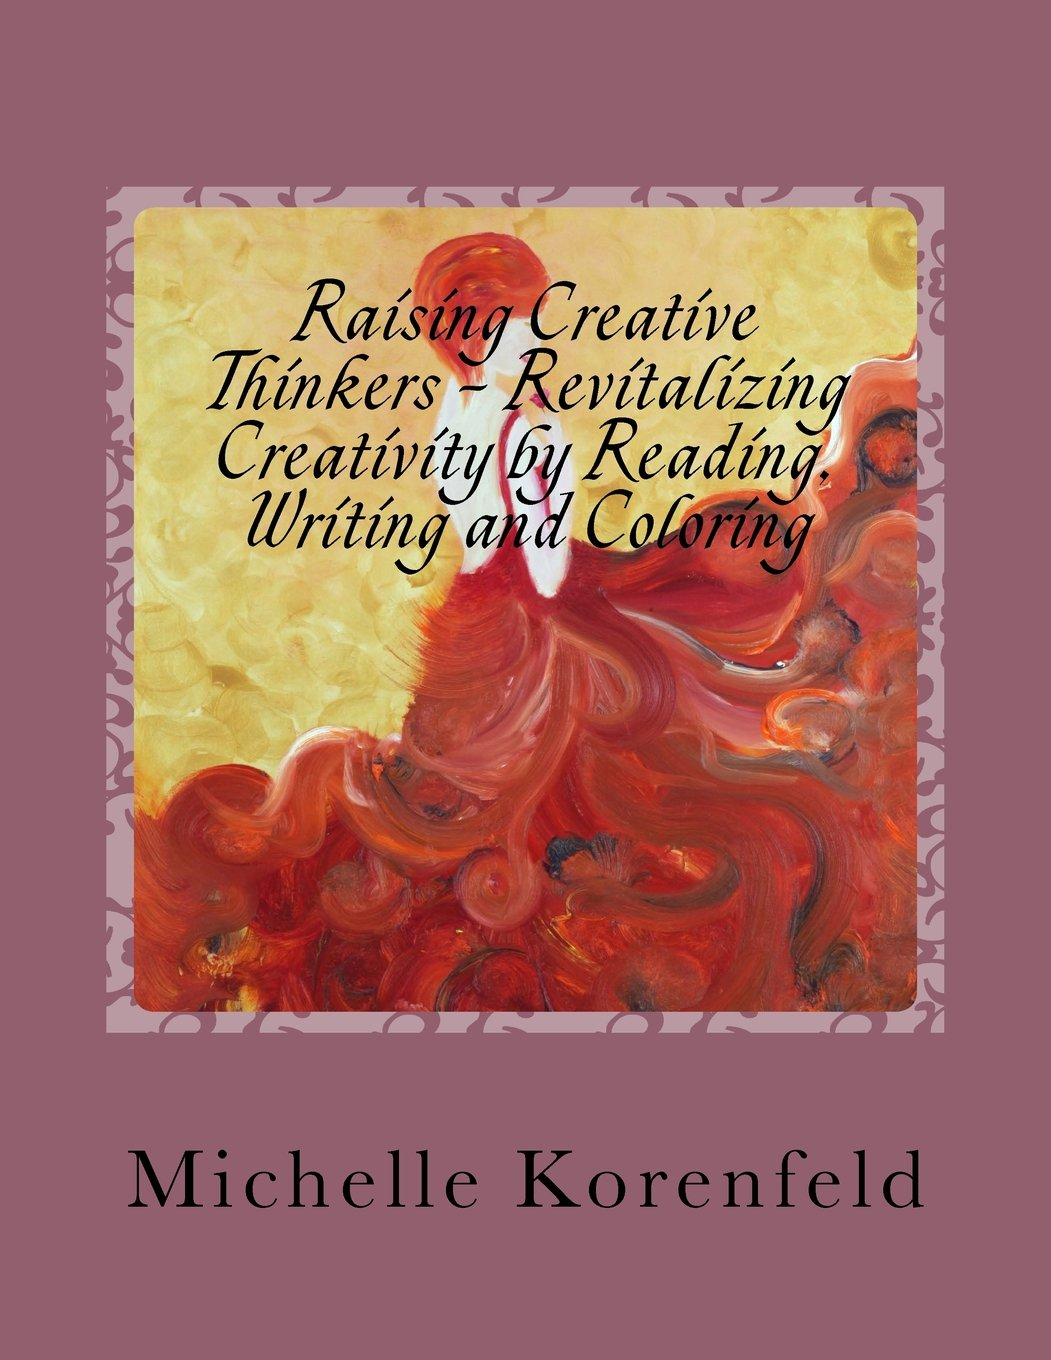 Read Online Raising Creative Thinkers - Revitalizing Creativity by Reading, Writing and Coloring: Drawing a Vision Plan to Fulfill Individual Creative Potentials for Myself and for the Children pdf epub